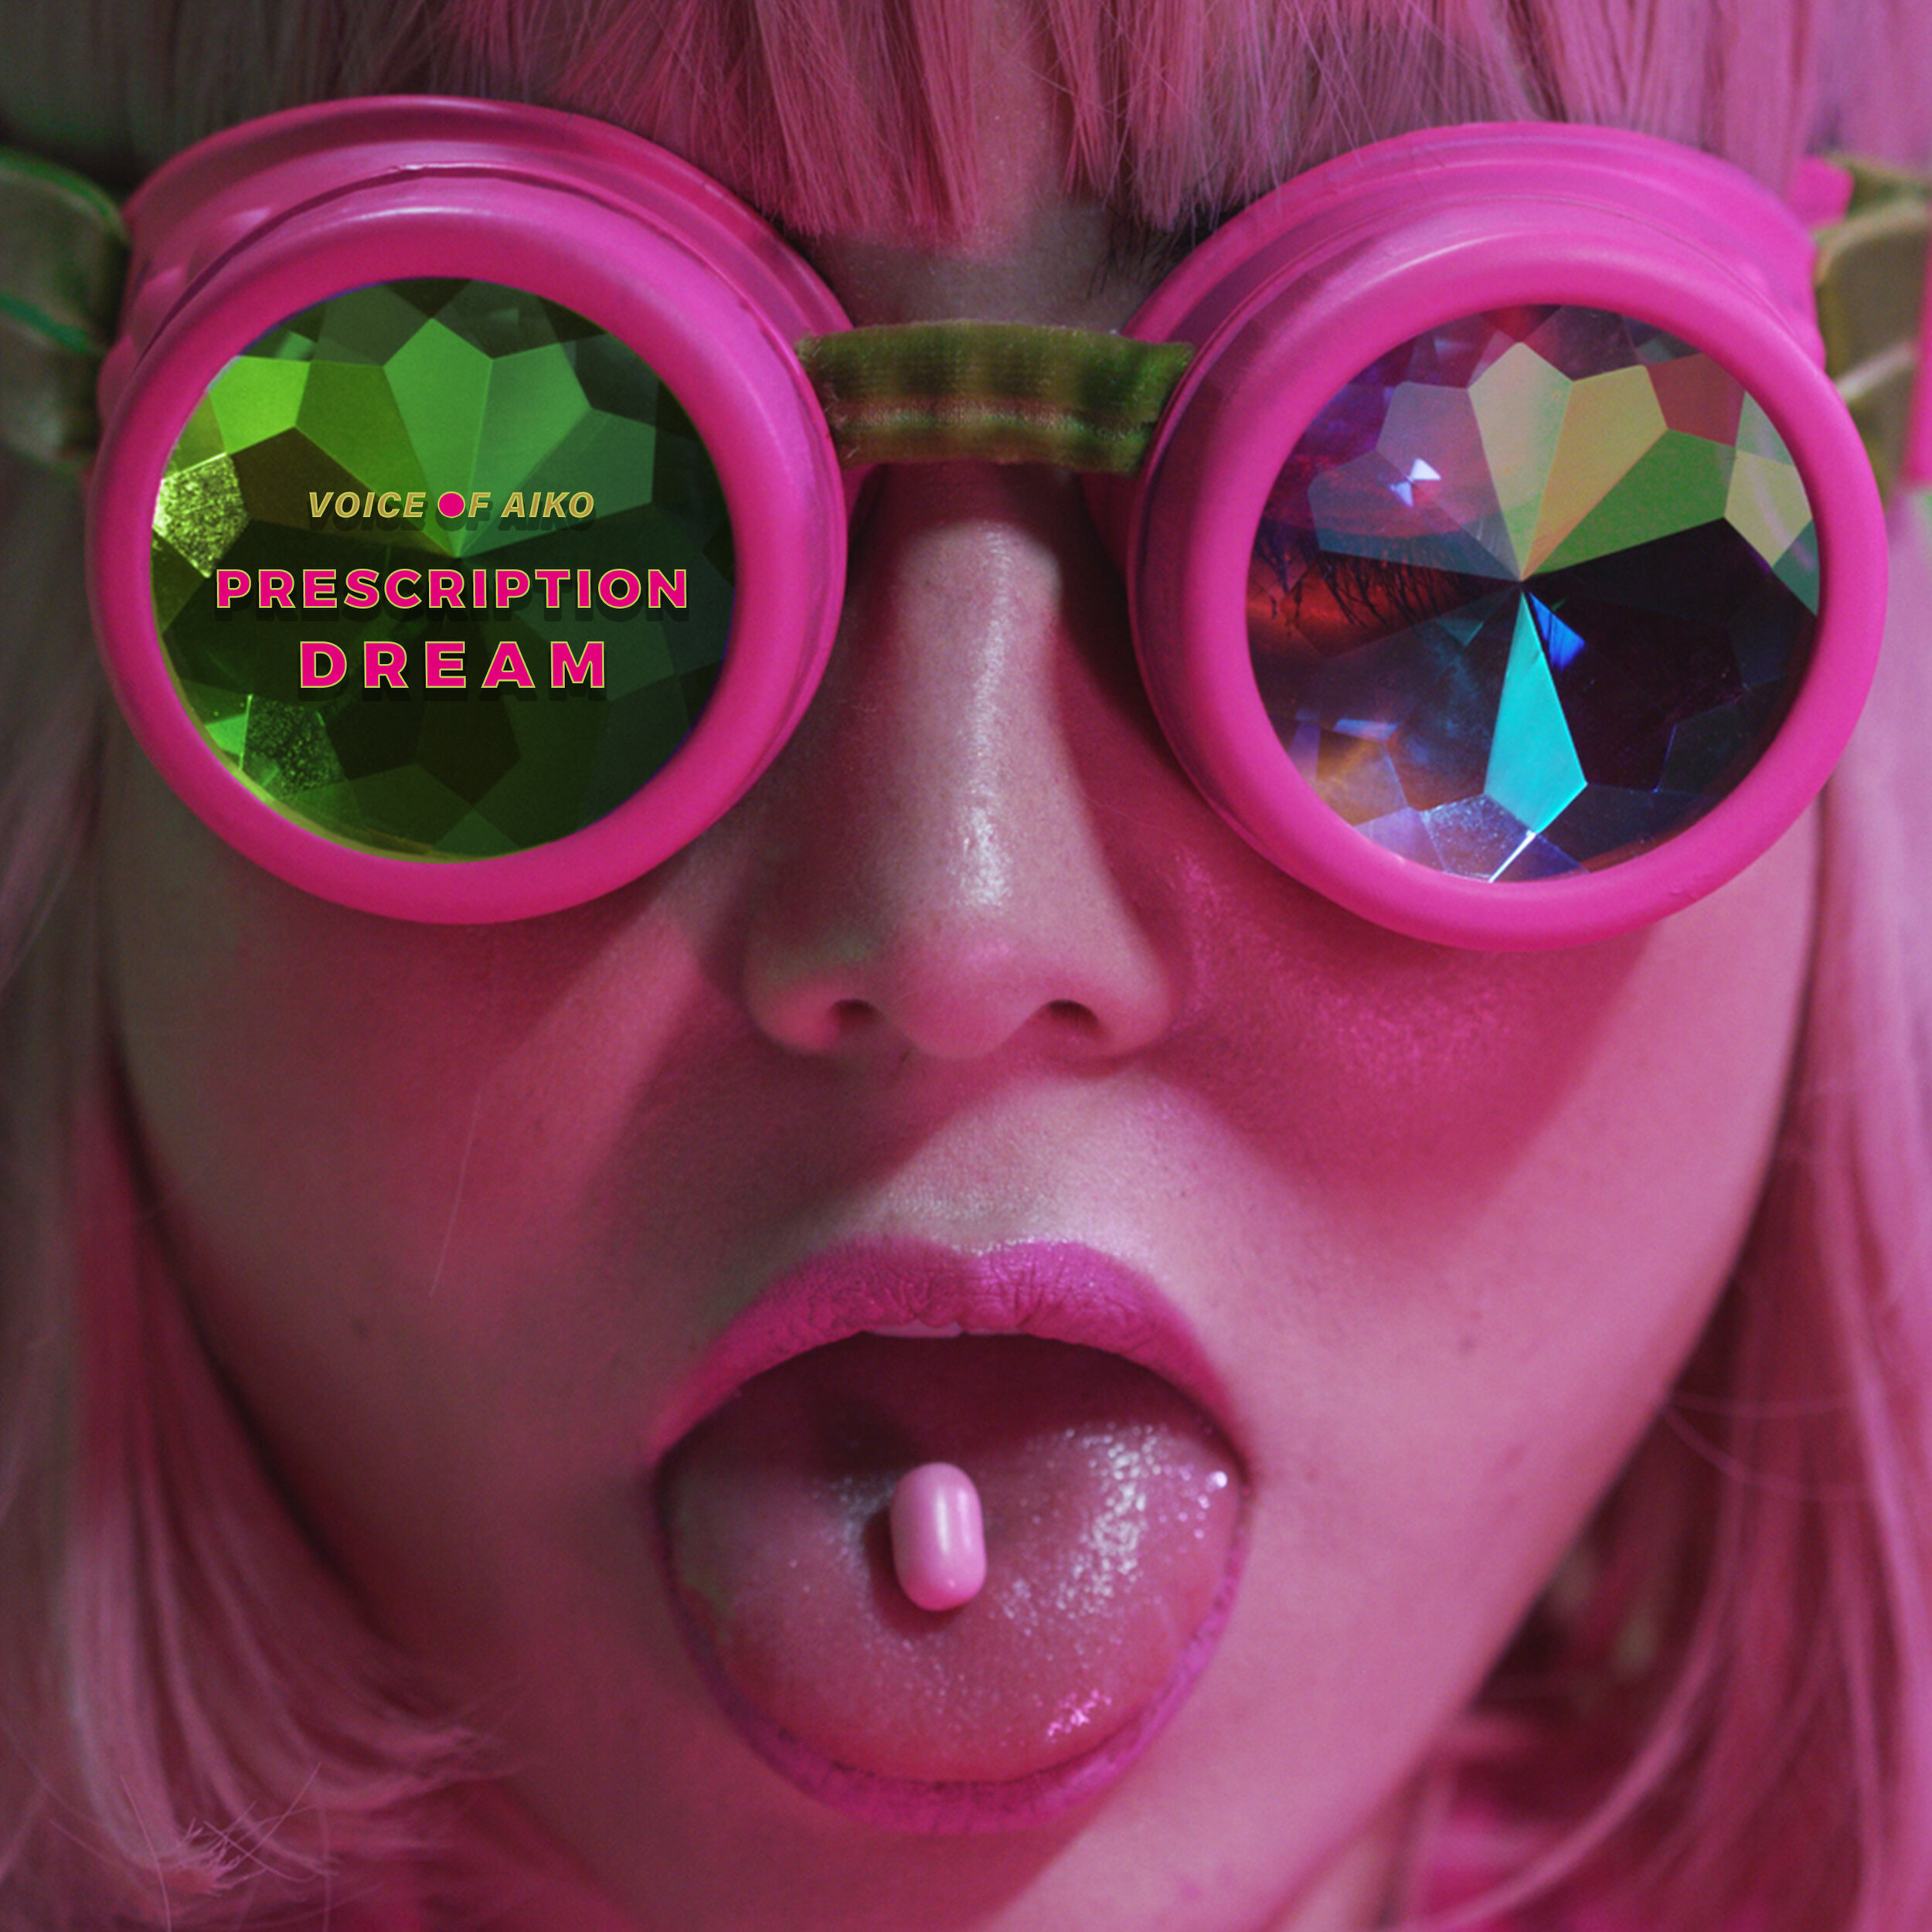 Voice of Aiko Prescription Dream iTunes Artwork.jpg